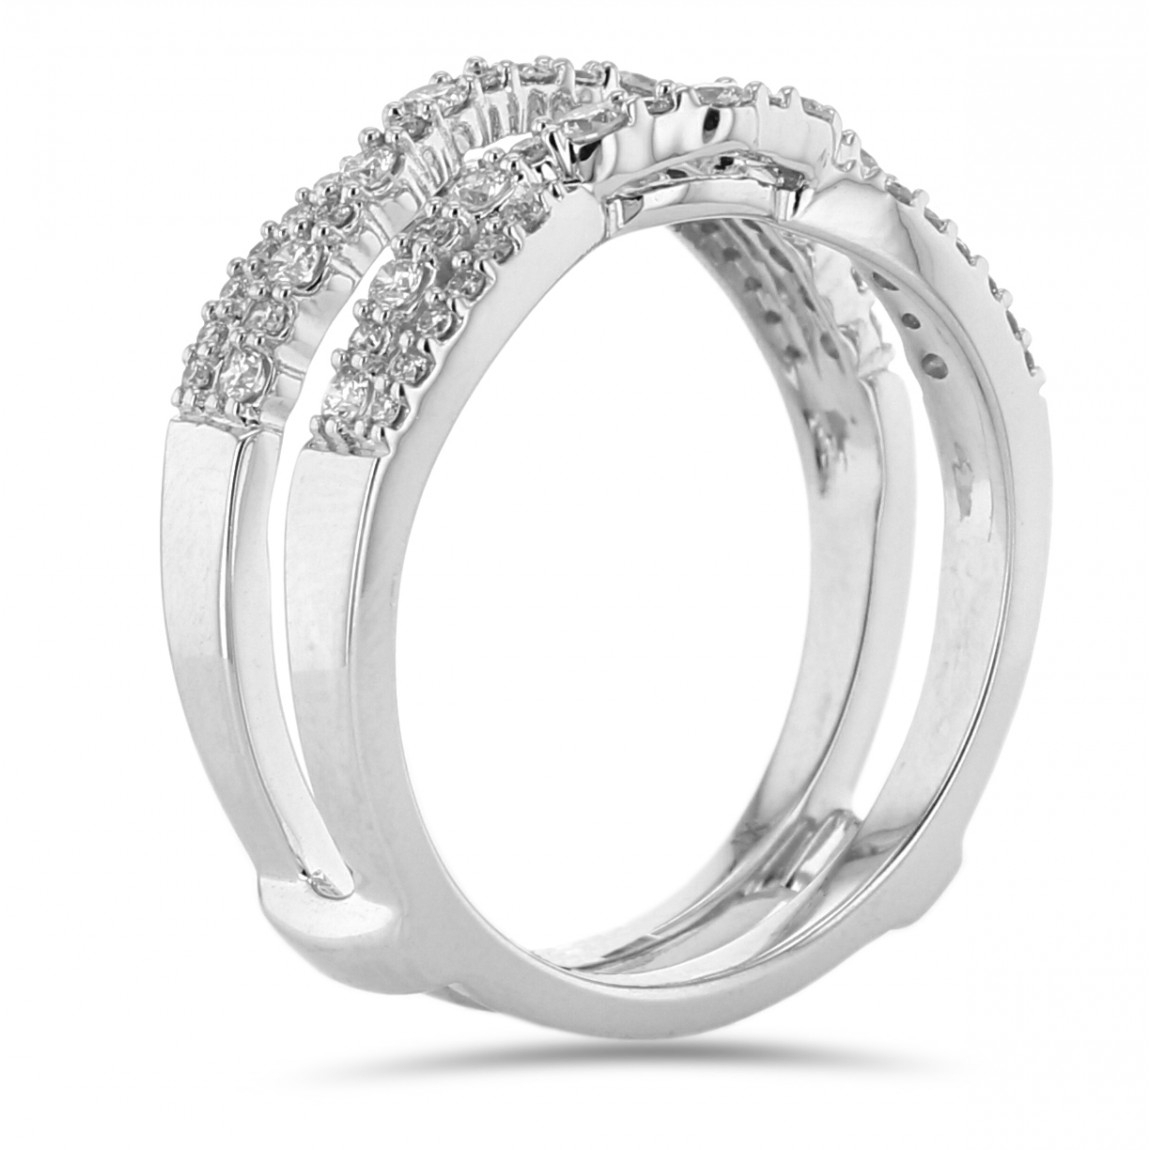 Diamond Cradle Wedding Band, Ring Enhancer, Curved Twist, 14K White Gold,   (View 5 of 25)